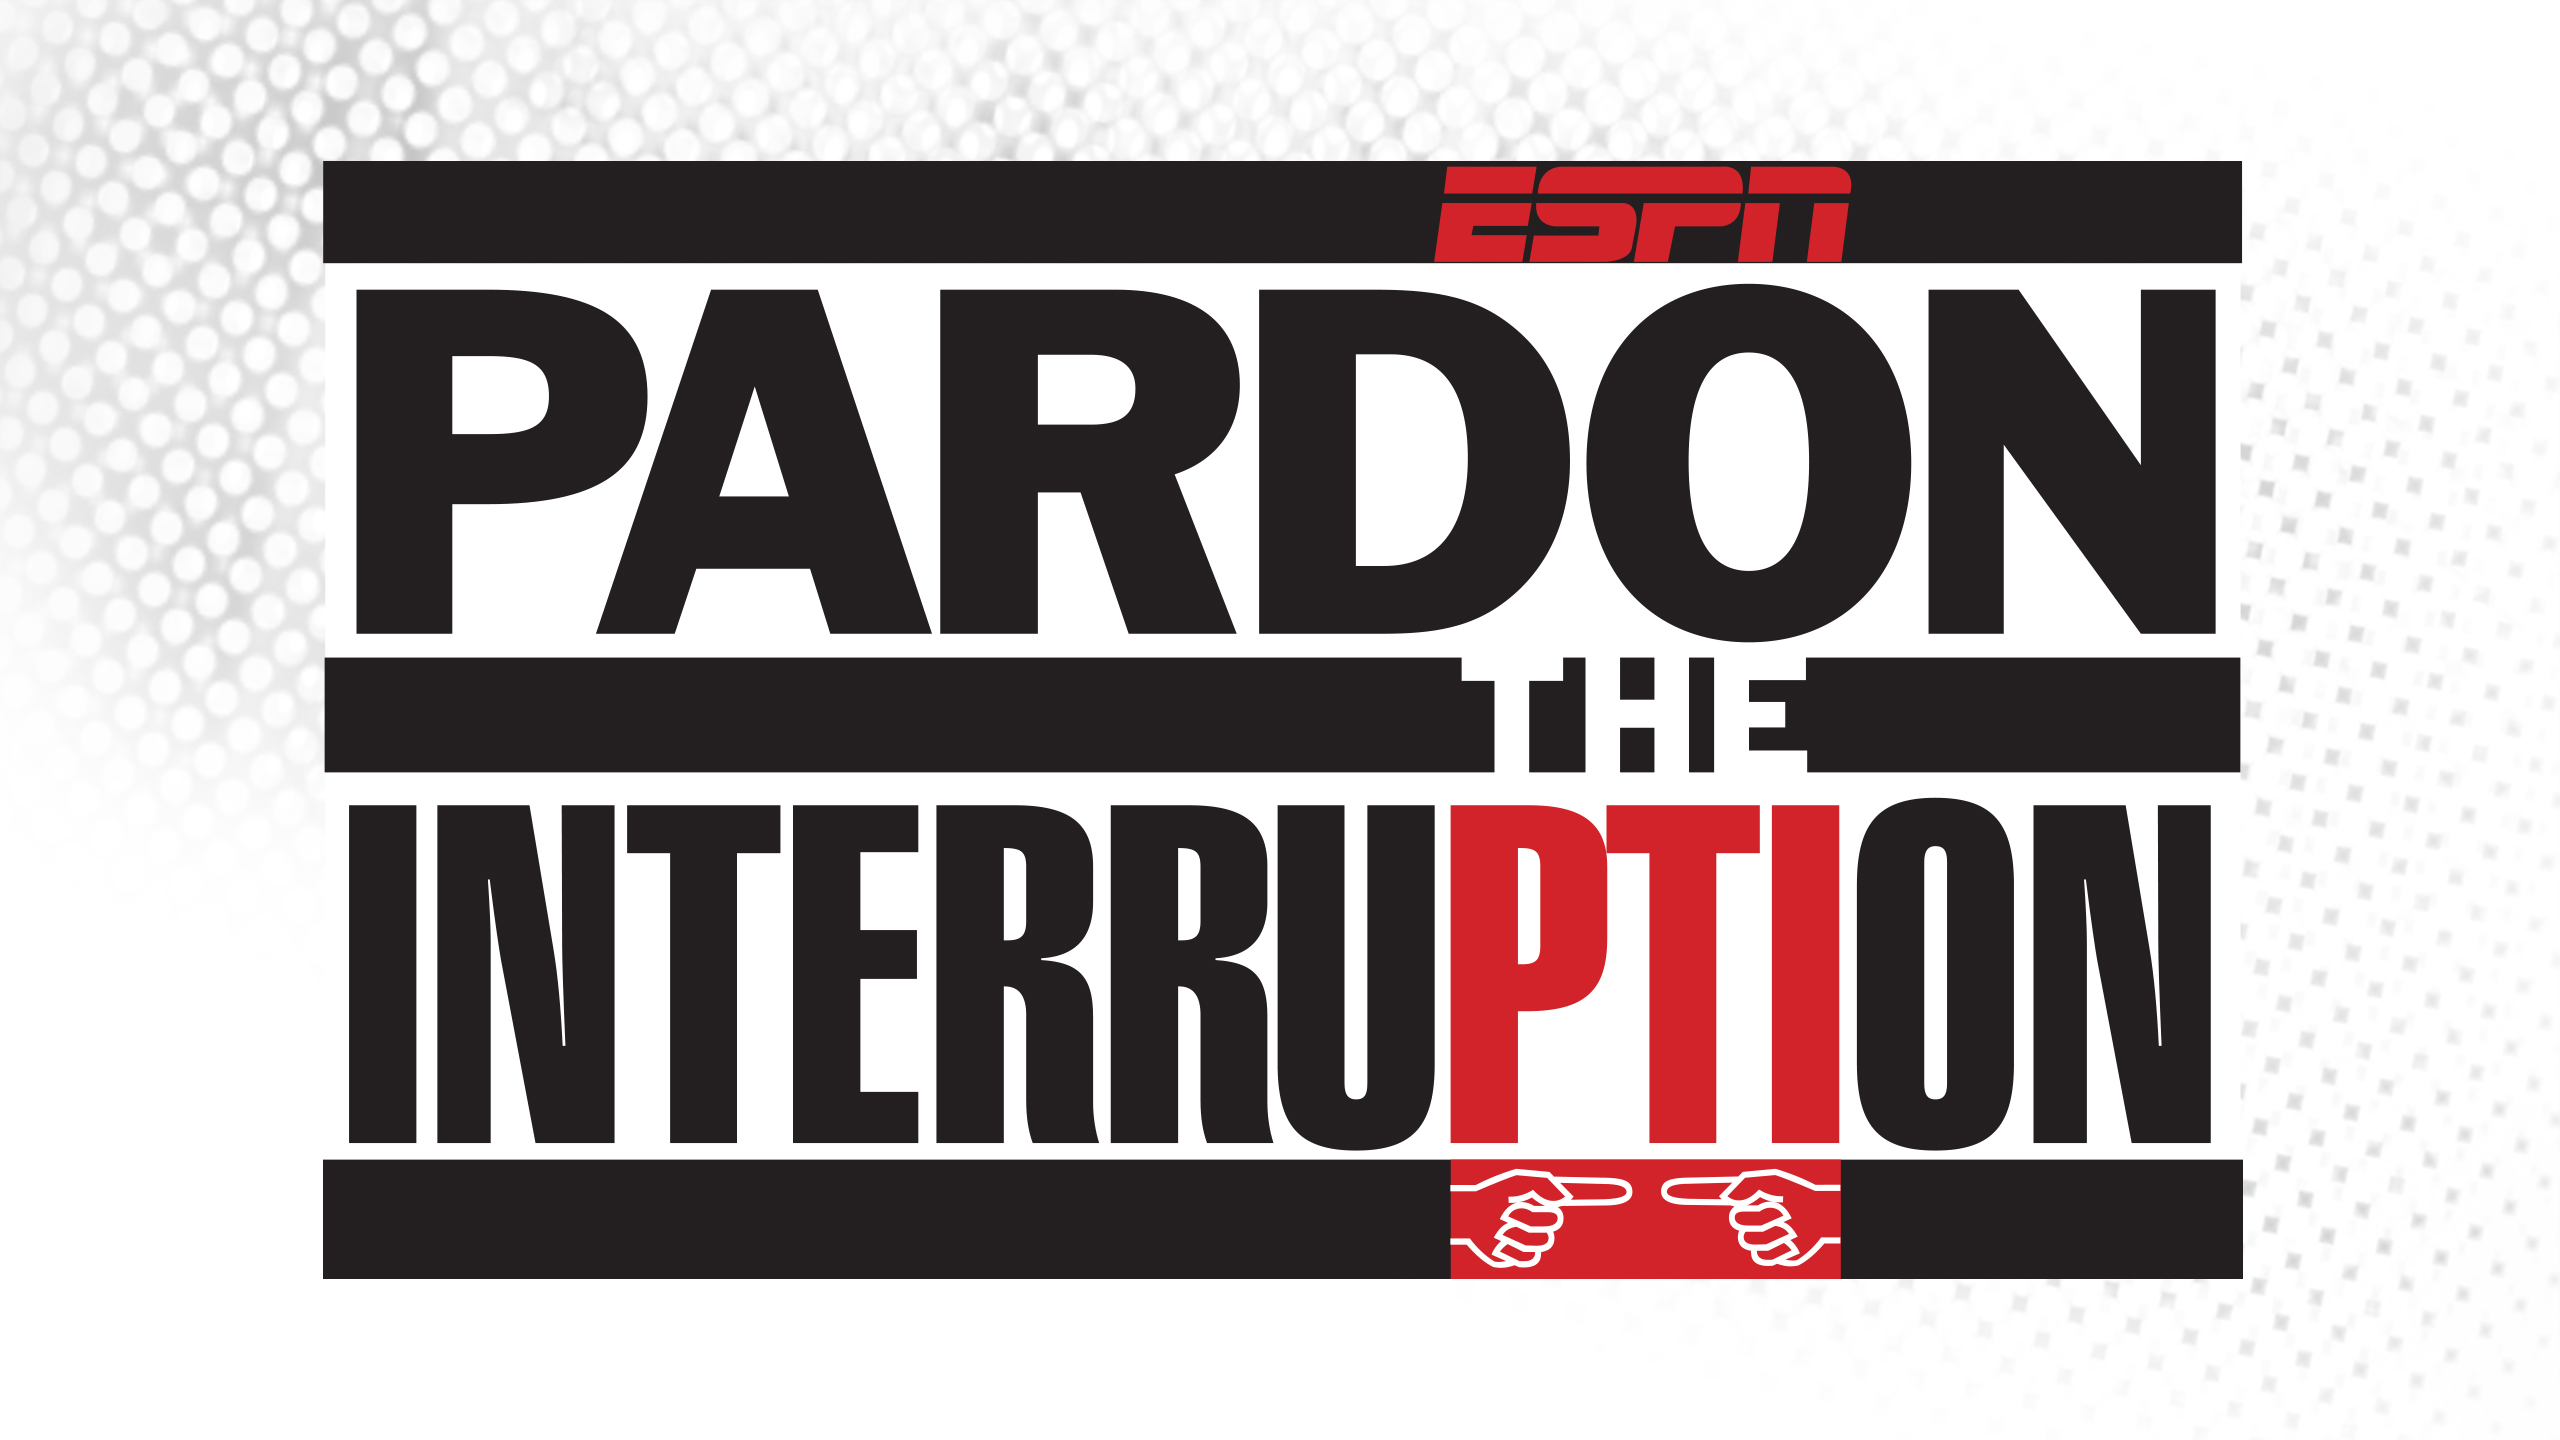 Mon, 9/24 - Pardon The Interruption